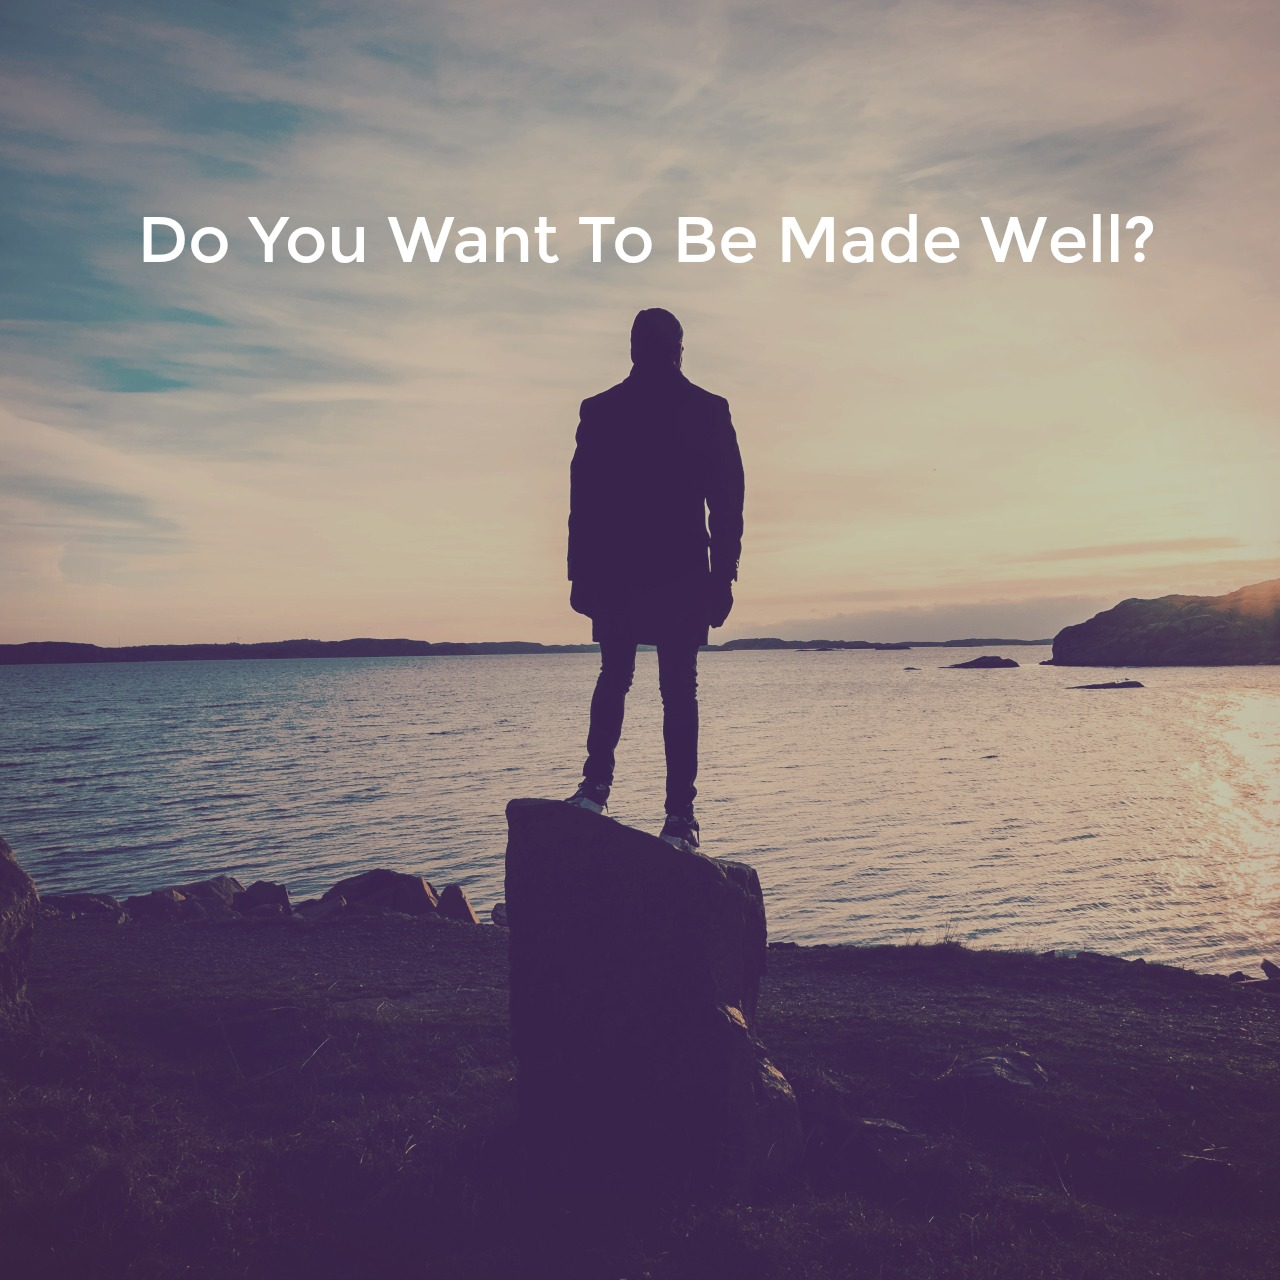 Do You Want To Be Made Well?